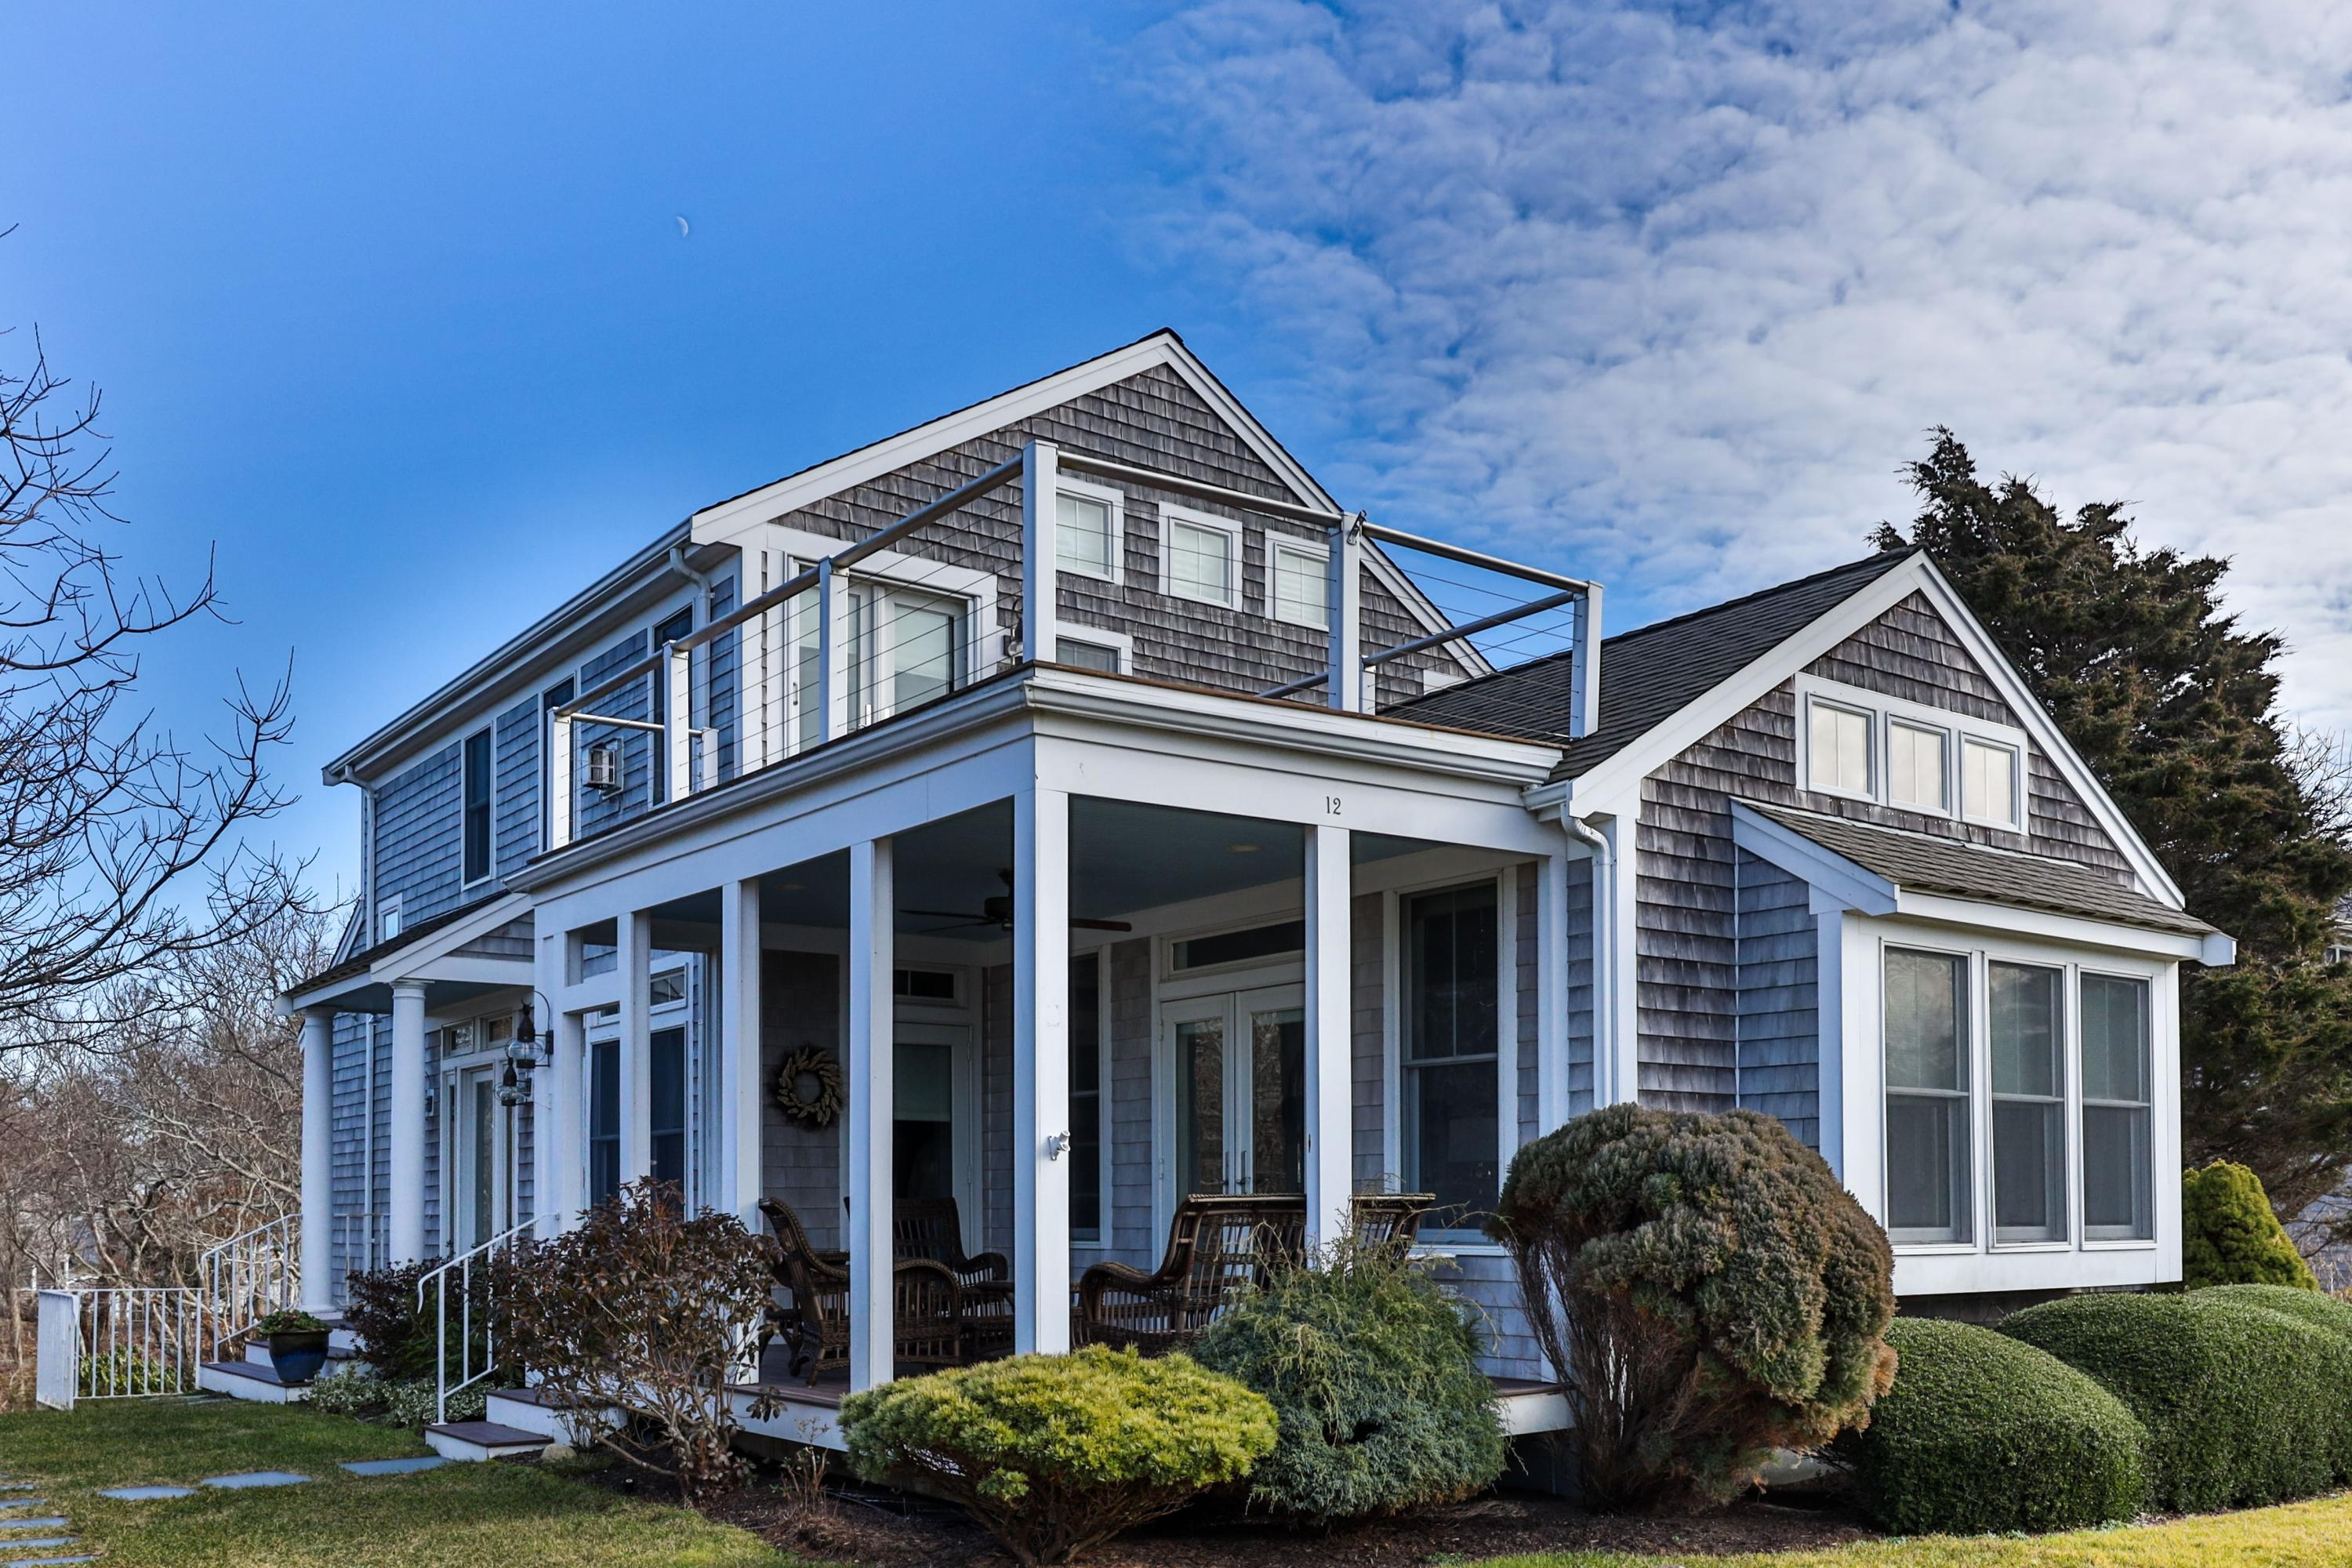 12 Bayberry Lane, Eastham MA, 02642 details